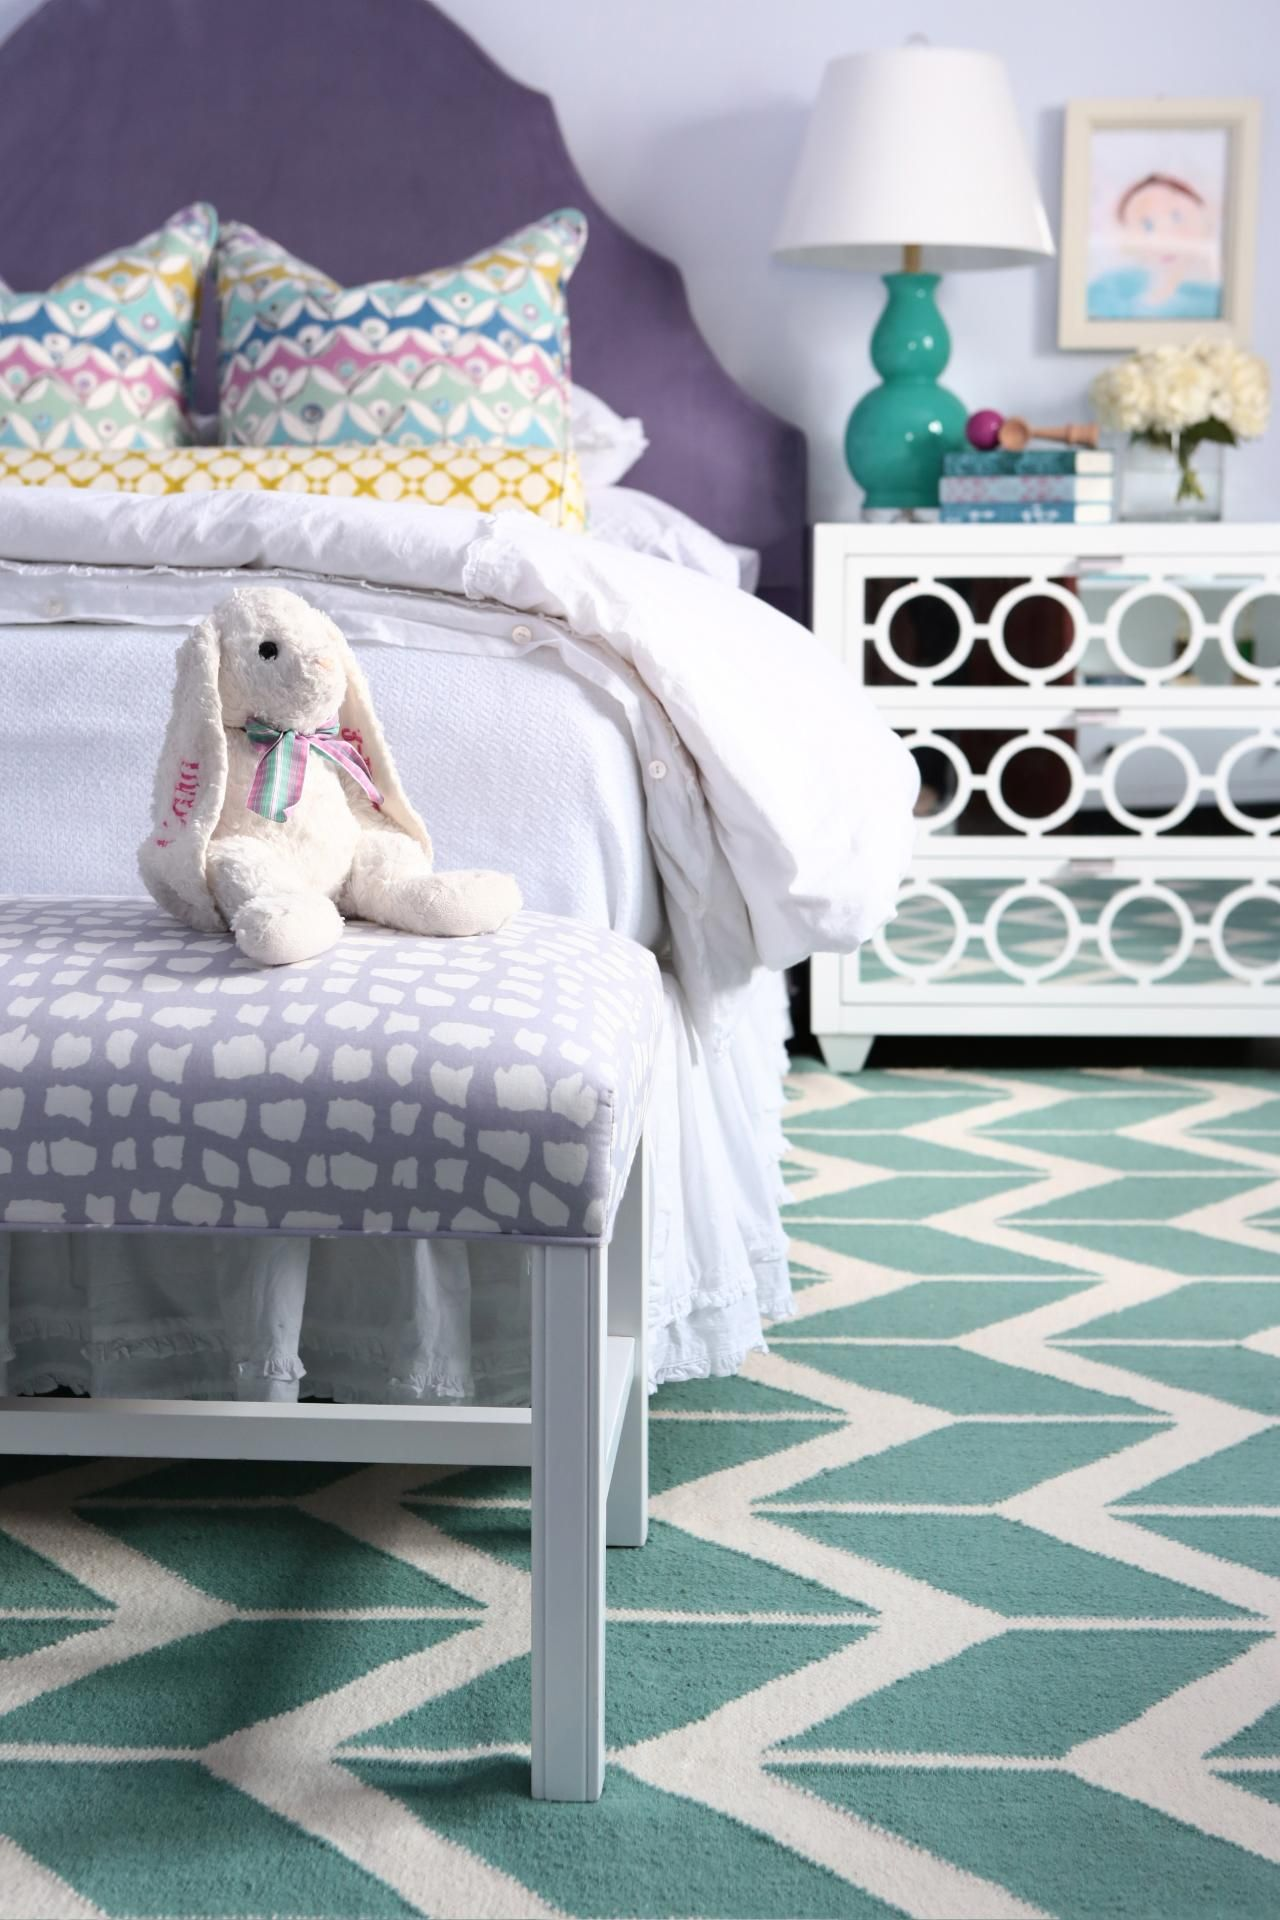 10 Year Bedroom Ideas: This Twin Bedroom For Two 10-year-old Girls Was Inspired